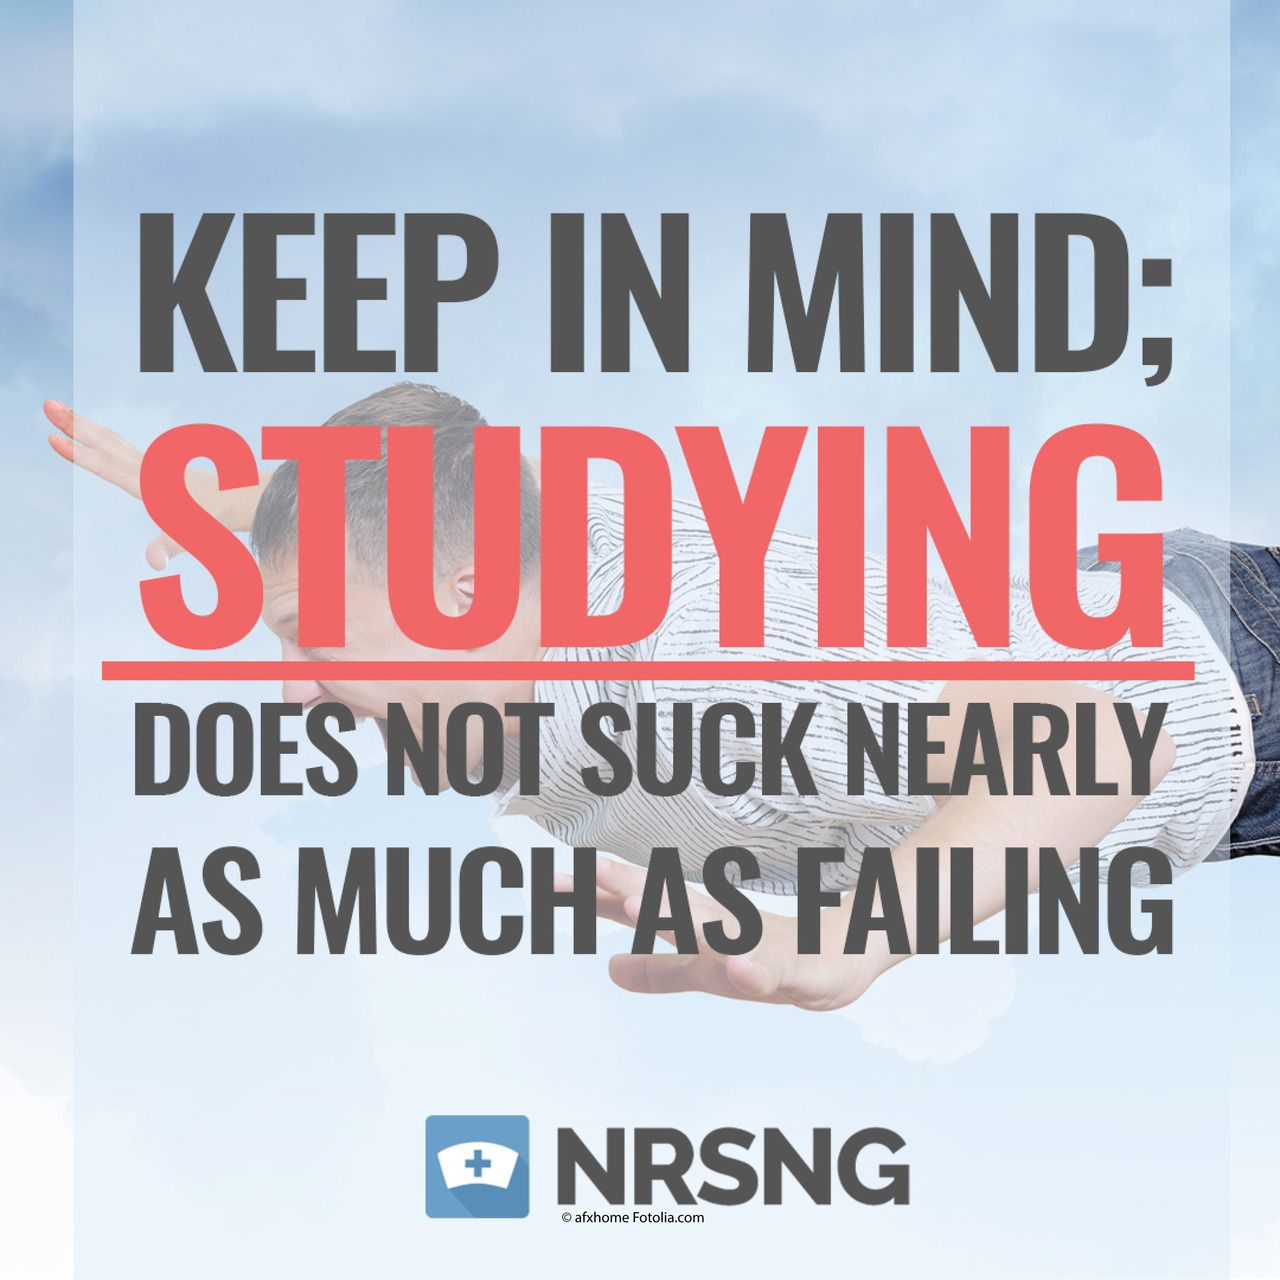 Motivational Quotes For Nursing Students: How To Slay Nursing School: Forget Study Tips, Go For